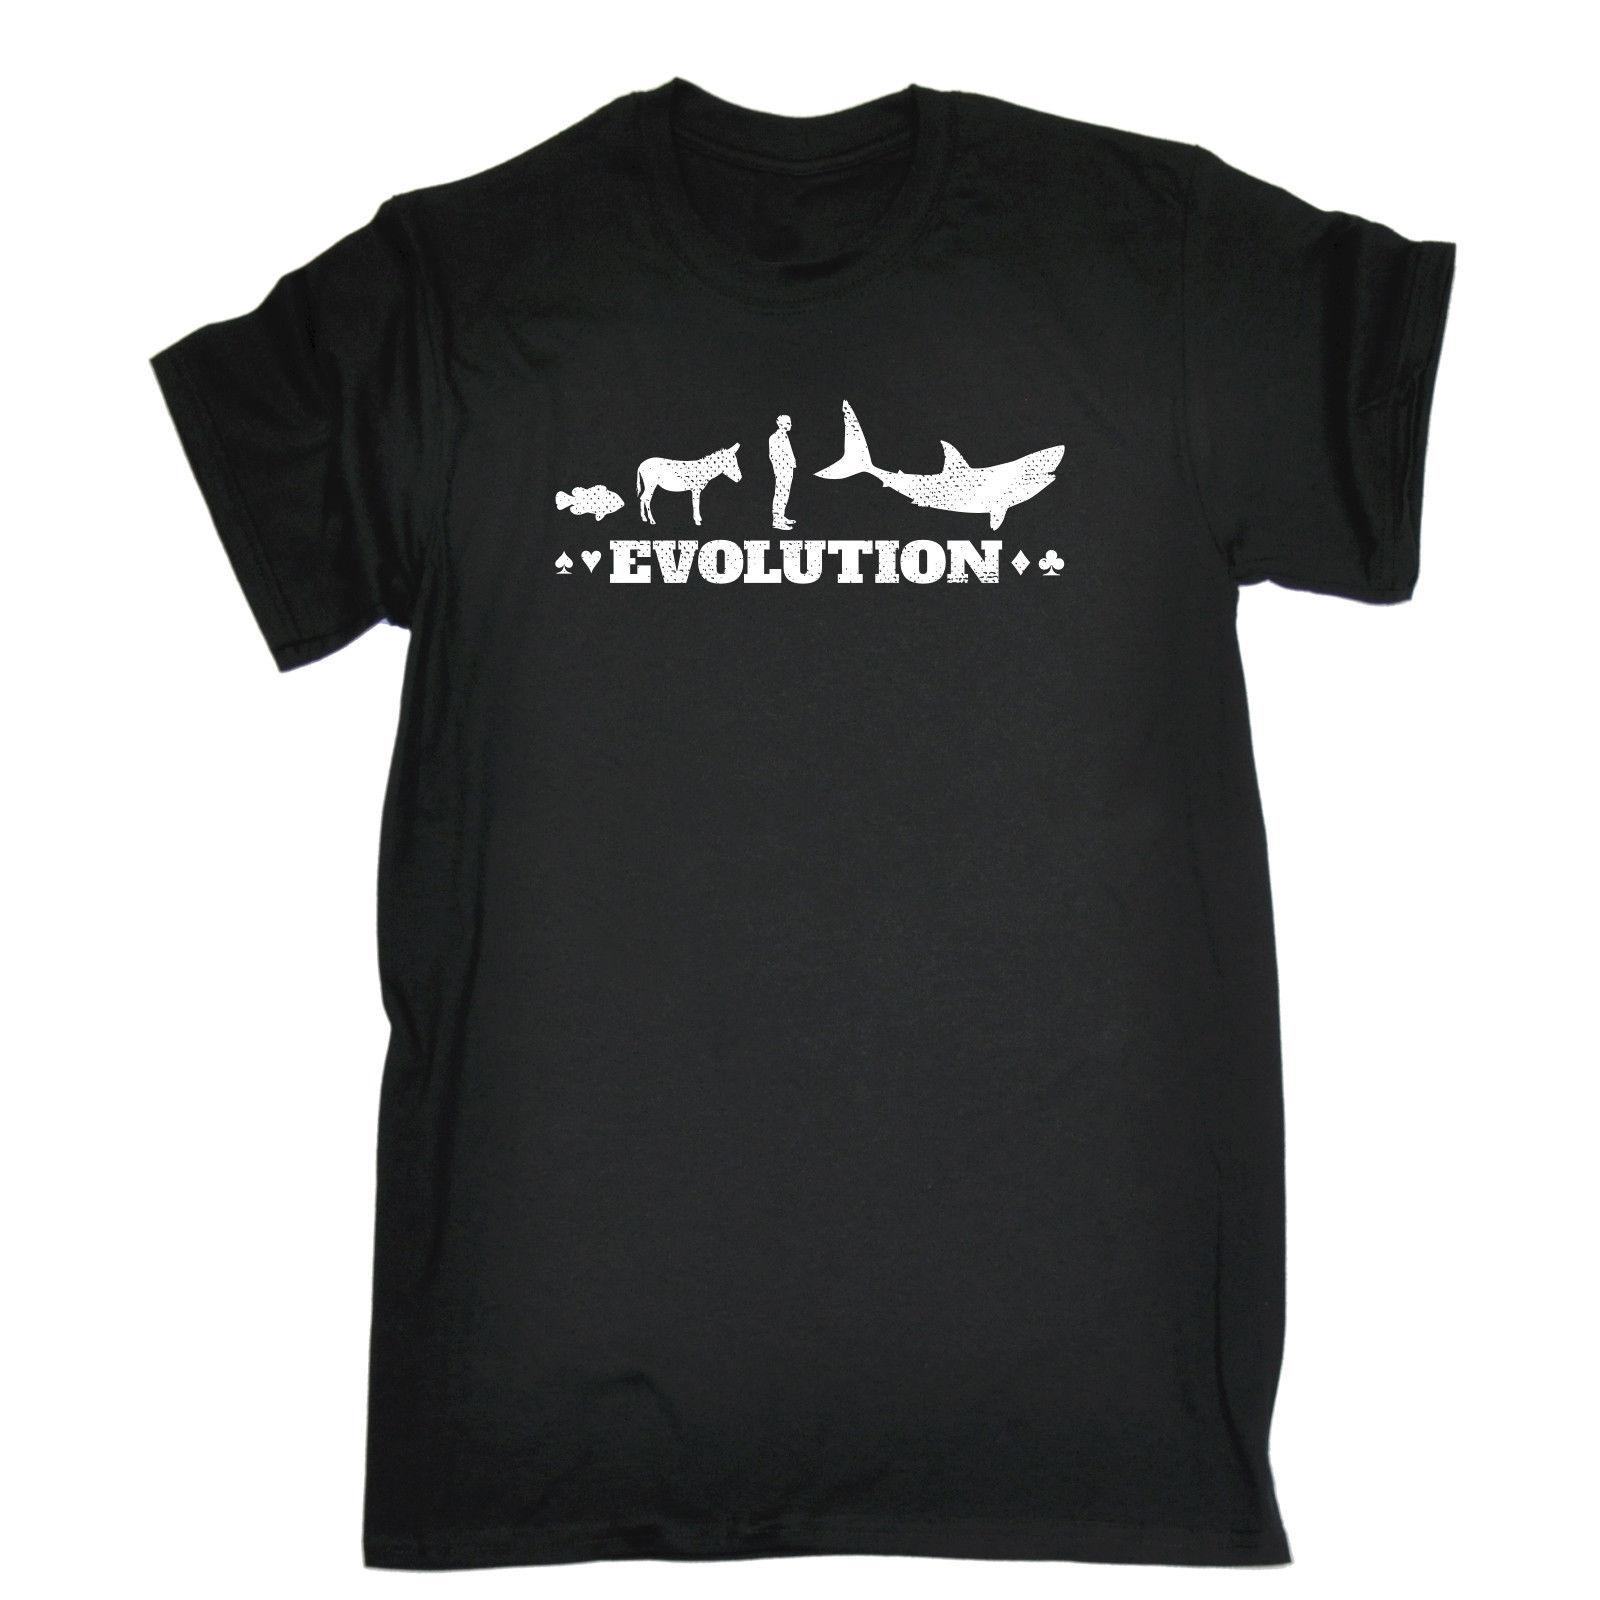 EVOLUTION POKER SHARK T-SHIRT Playing Cards Blackjack Funny Birthday Gift 123t 100% Cott ...